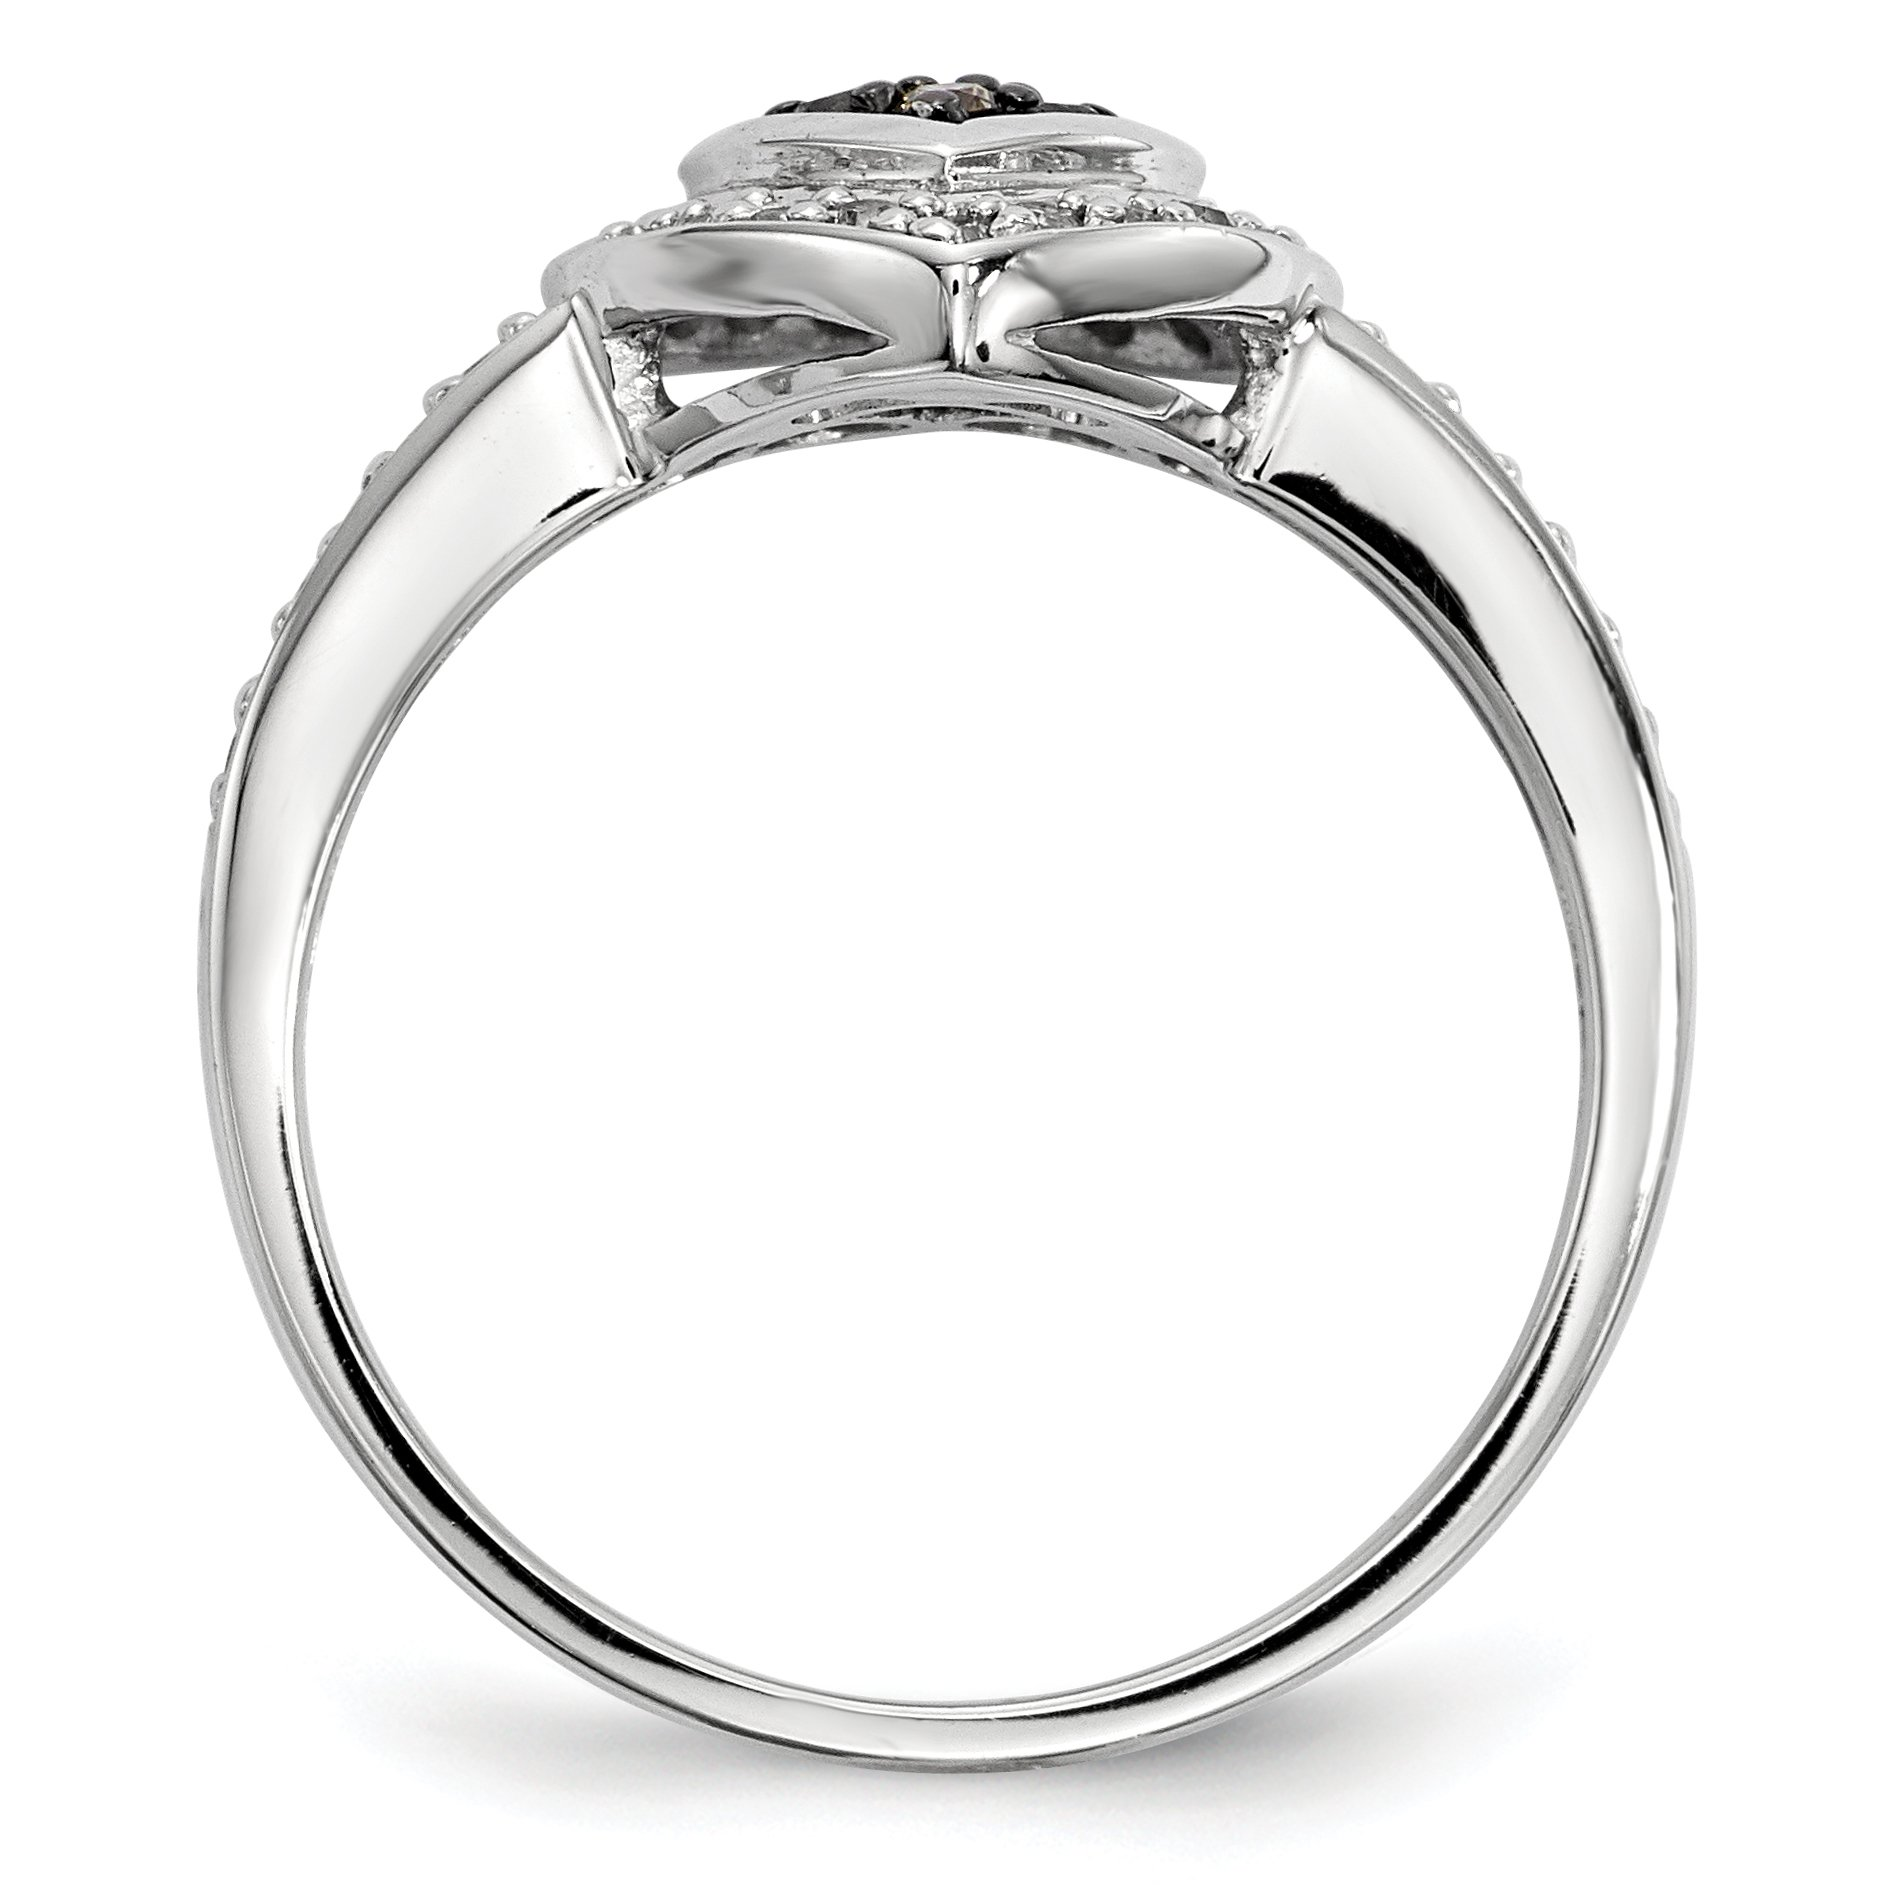 ICE CARATS 925 Sterling Silver Champagne Diamond Small Heart Band Ring Size 8.00 S/love Fine Jewelry Gift Set For Women Heart by ICE CARATS (Image #2)